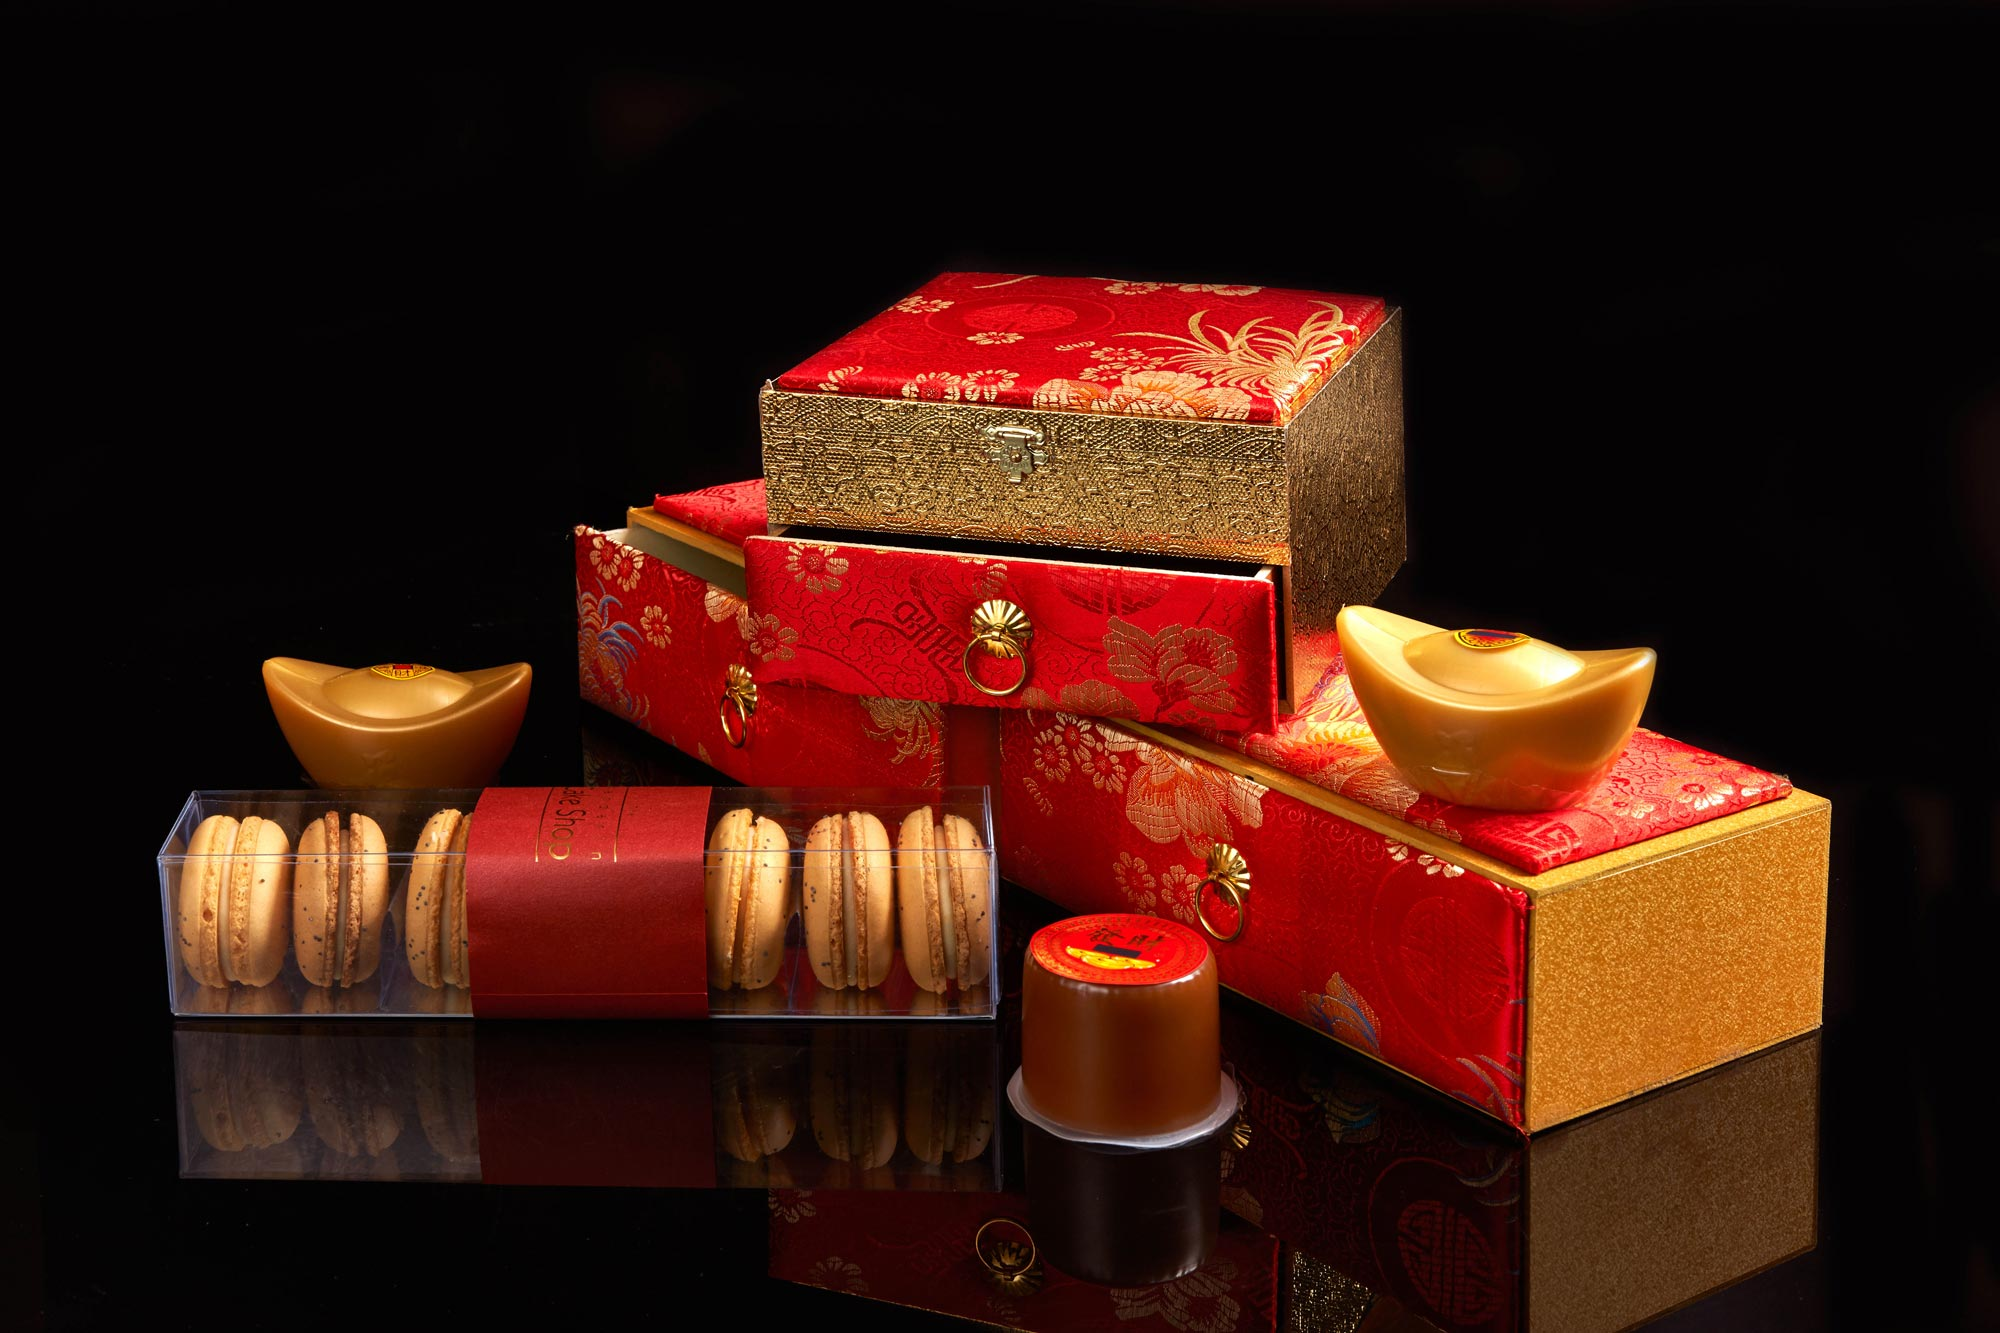 Chinese New Year Gifts at Lai Po Heen at the Mandarin Oriental